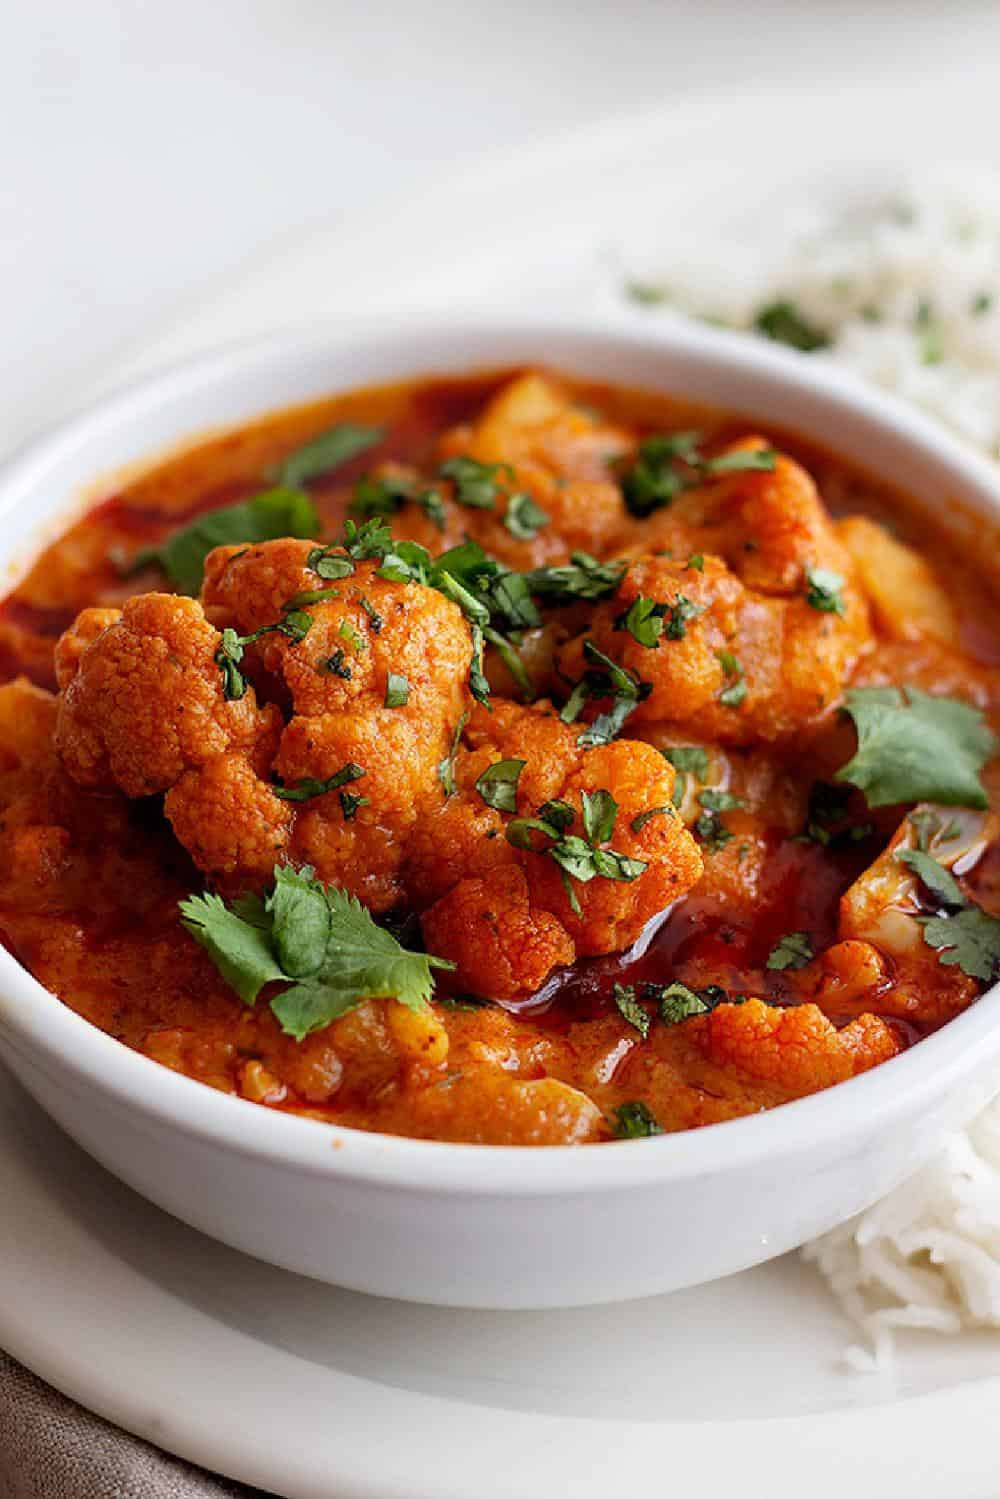 """Here's a delicious """"clean-the-fridge"""" vegetable tikka masala recipe that you'll love. Learn how to make a tasty vegetarian tikka masala with just a few ingredients and an easy shortcut. This cauliflower tikka masala is full of flavor and will knock your socks off!"""